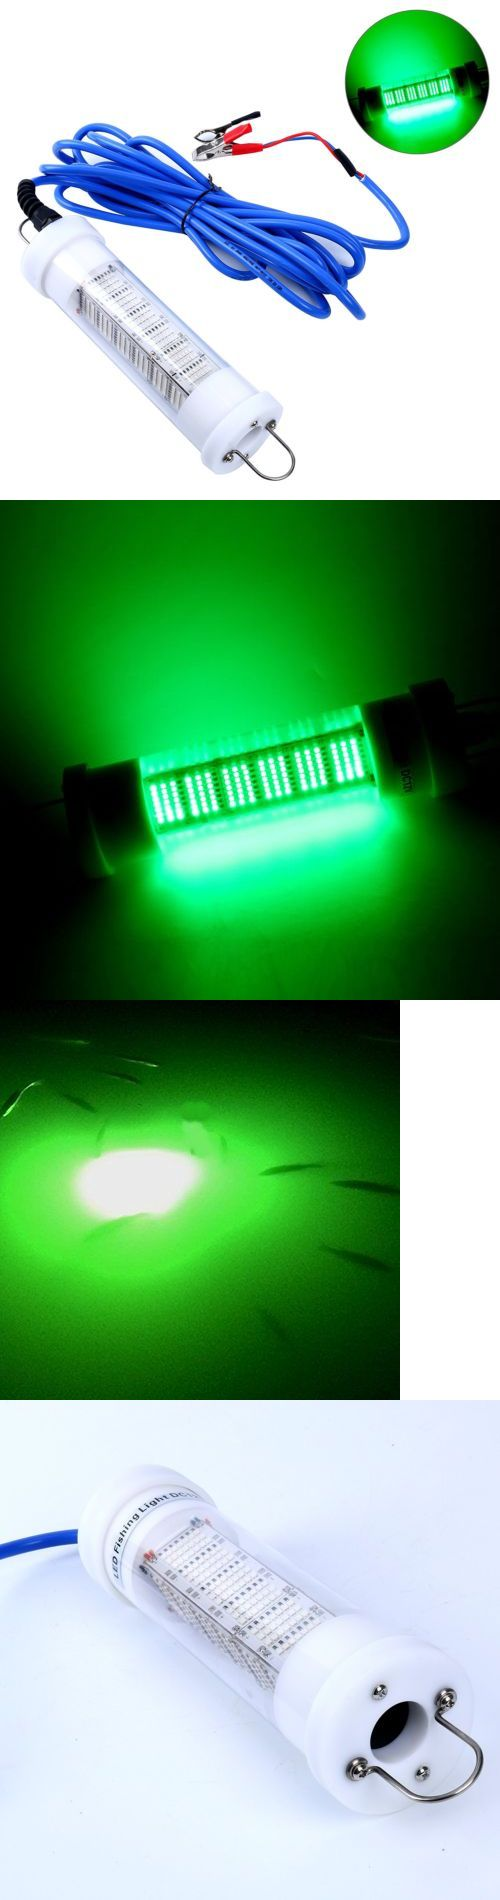 Lights 123489: Green Led 12V 170W Lure Bait Finder Night Fishing Submersible Light Boat Marine -> BUY IT NOW ONLY: $173.99 on eBay!